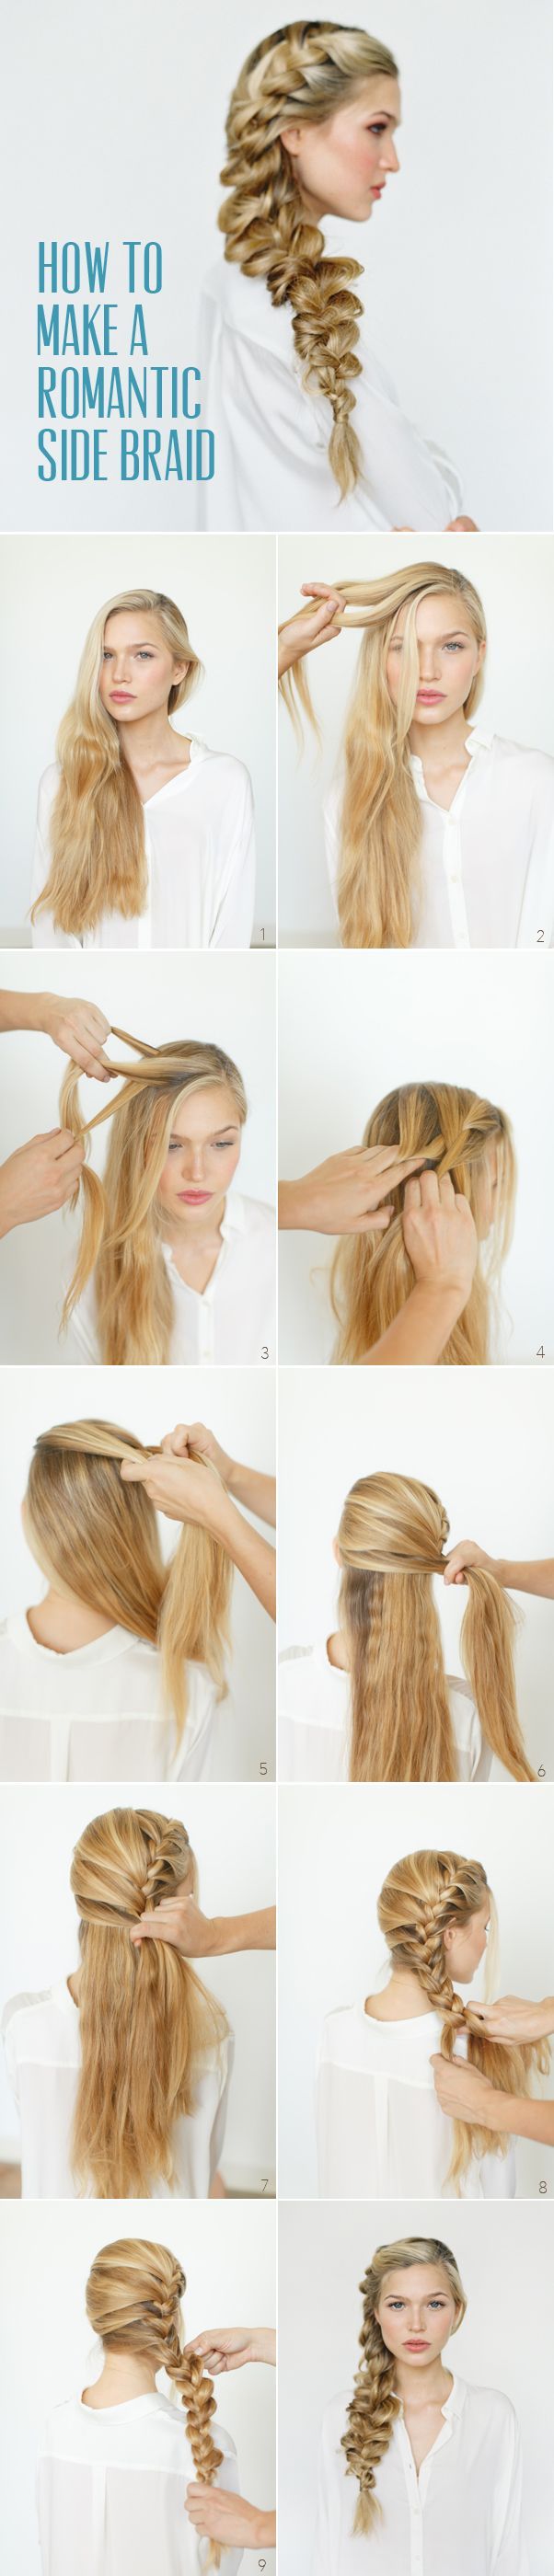 How to make a romantic side braid